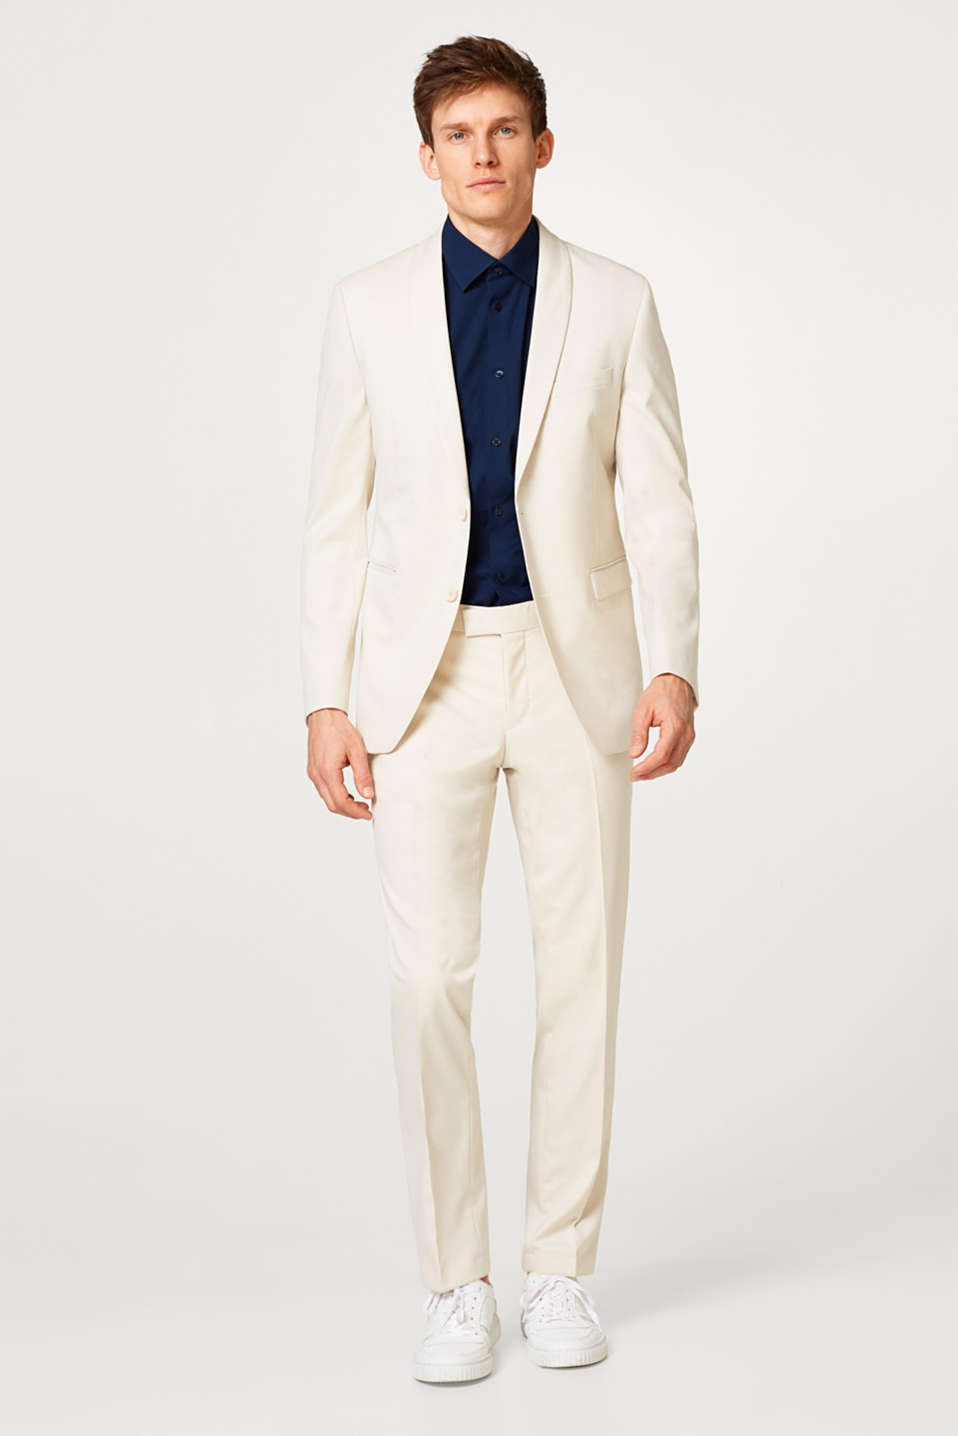 Pale suit jacket + added stretch for comfort